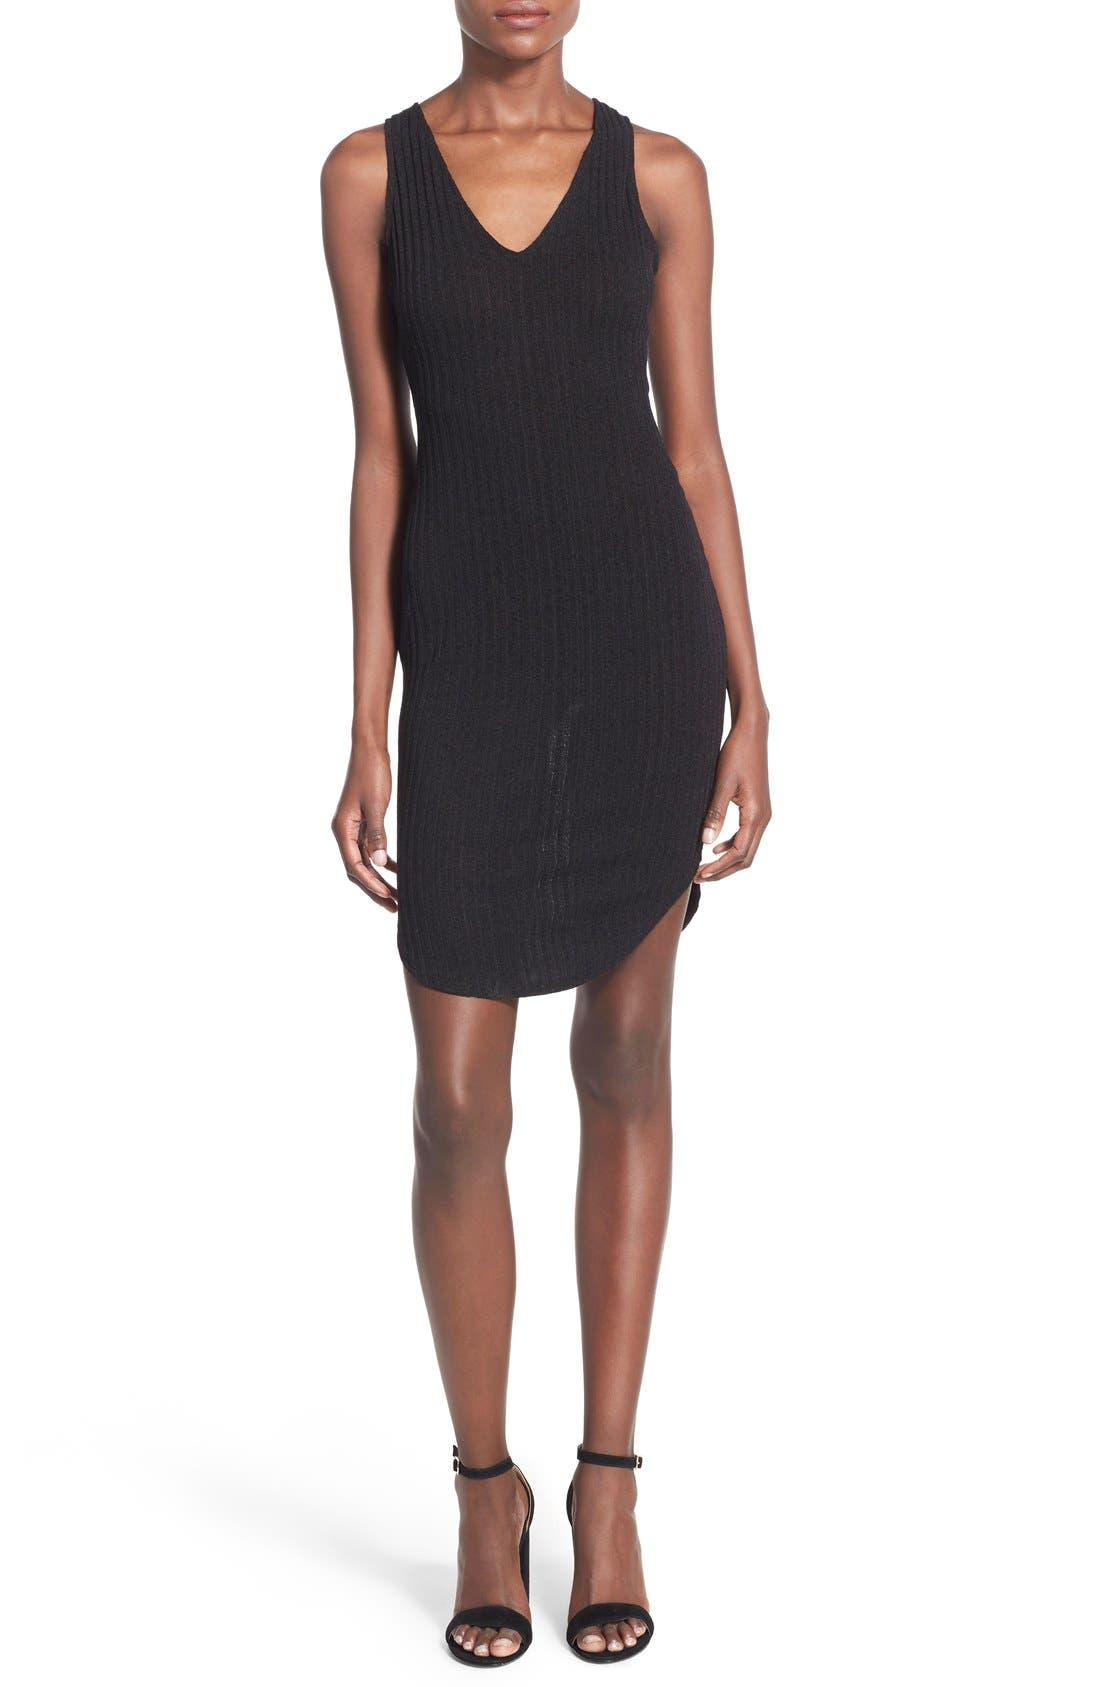 Alternate Image 1 Selected - Lush Ribbed Body-Con Dress